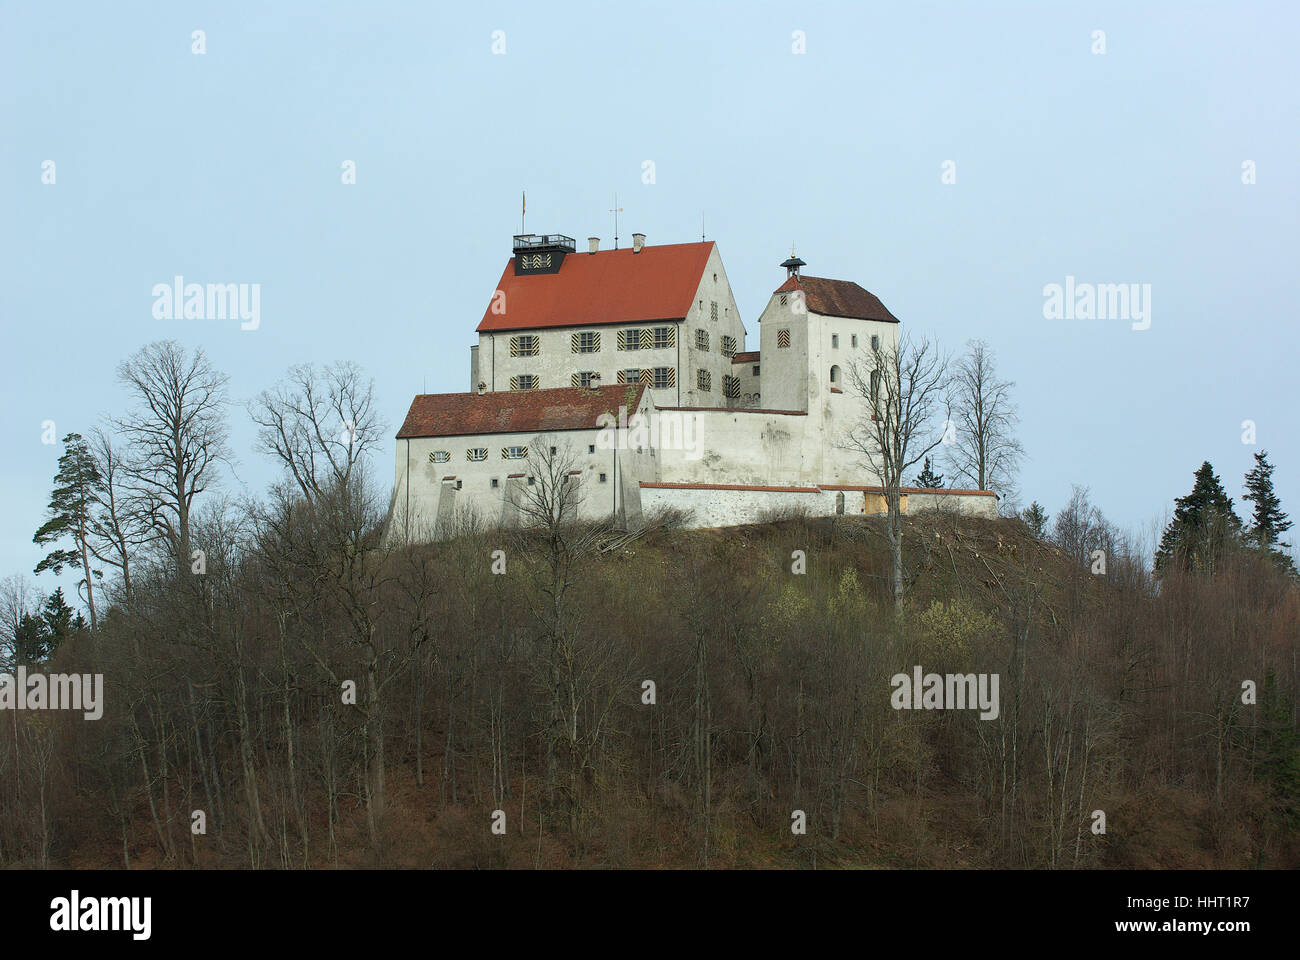 fortress, chateau, castle, middle ages, europe, fortress, medieval, germany, - Stock Image